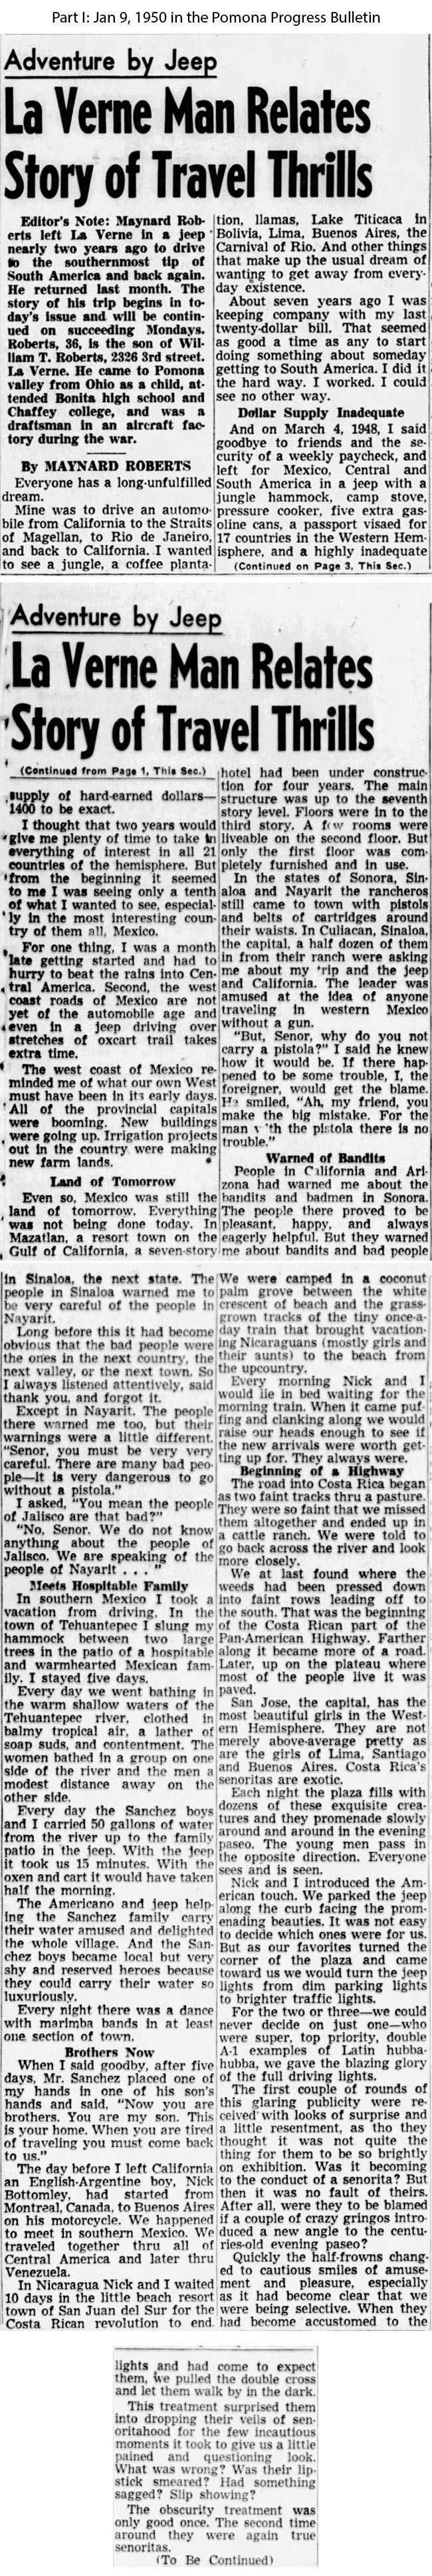 1950-01-09-pomona-progress-bulletin-maynard-roberts-jeep-trip-lores